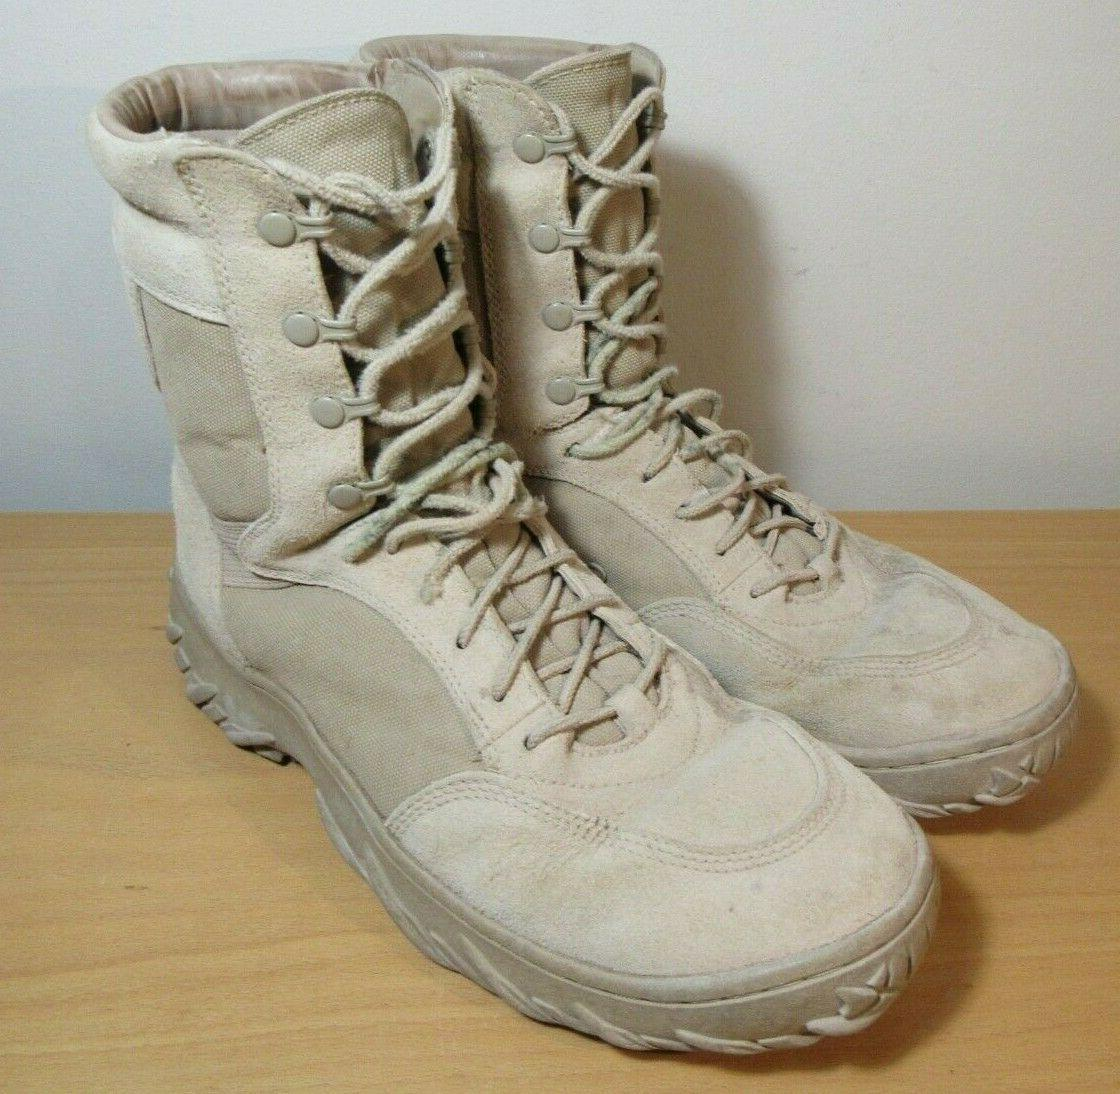 11098 889c military sf tactical combat lace